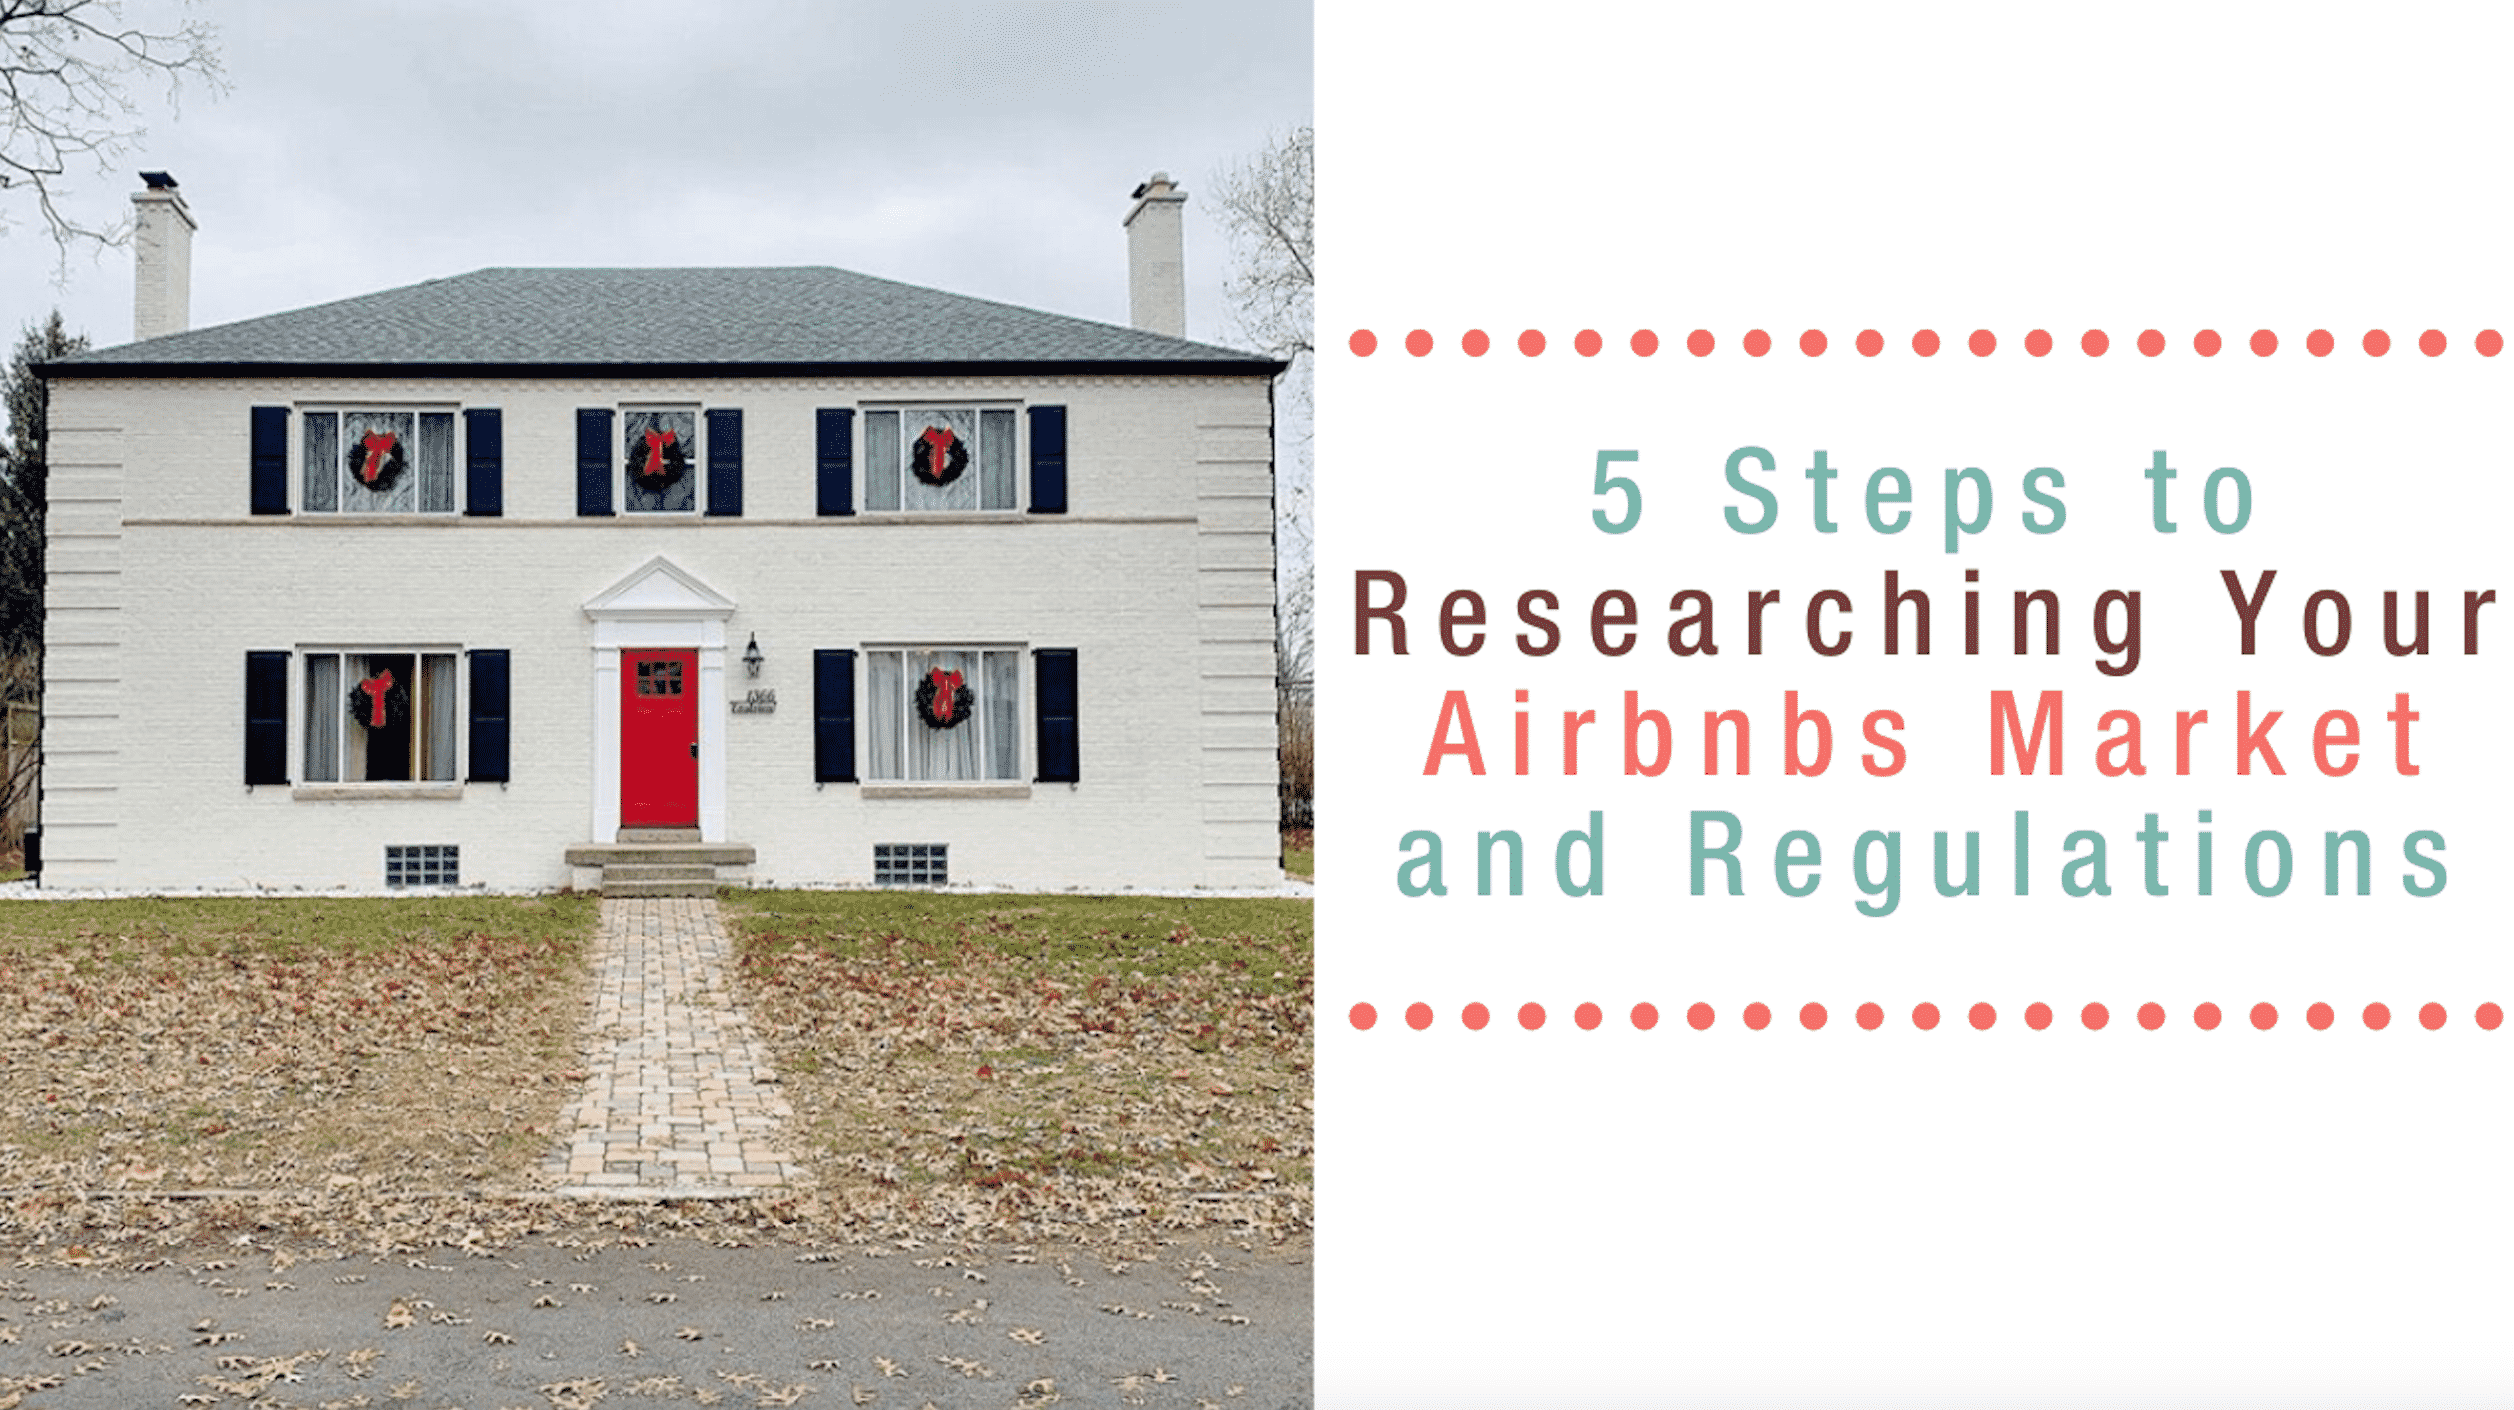 5_Steps_to_Researching_Your_Airbnbs_Market_and_Regulations